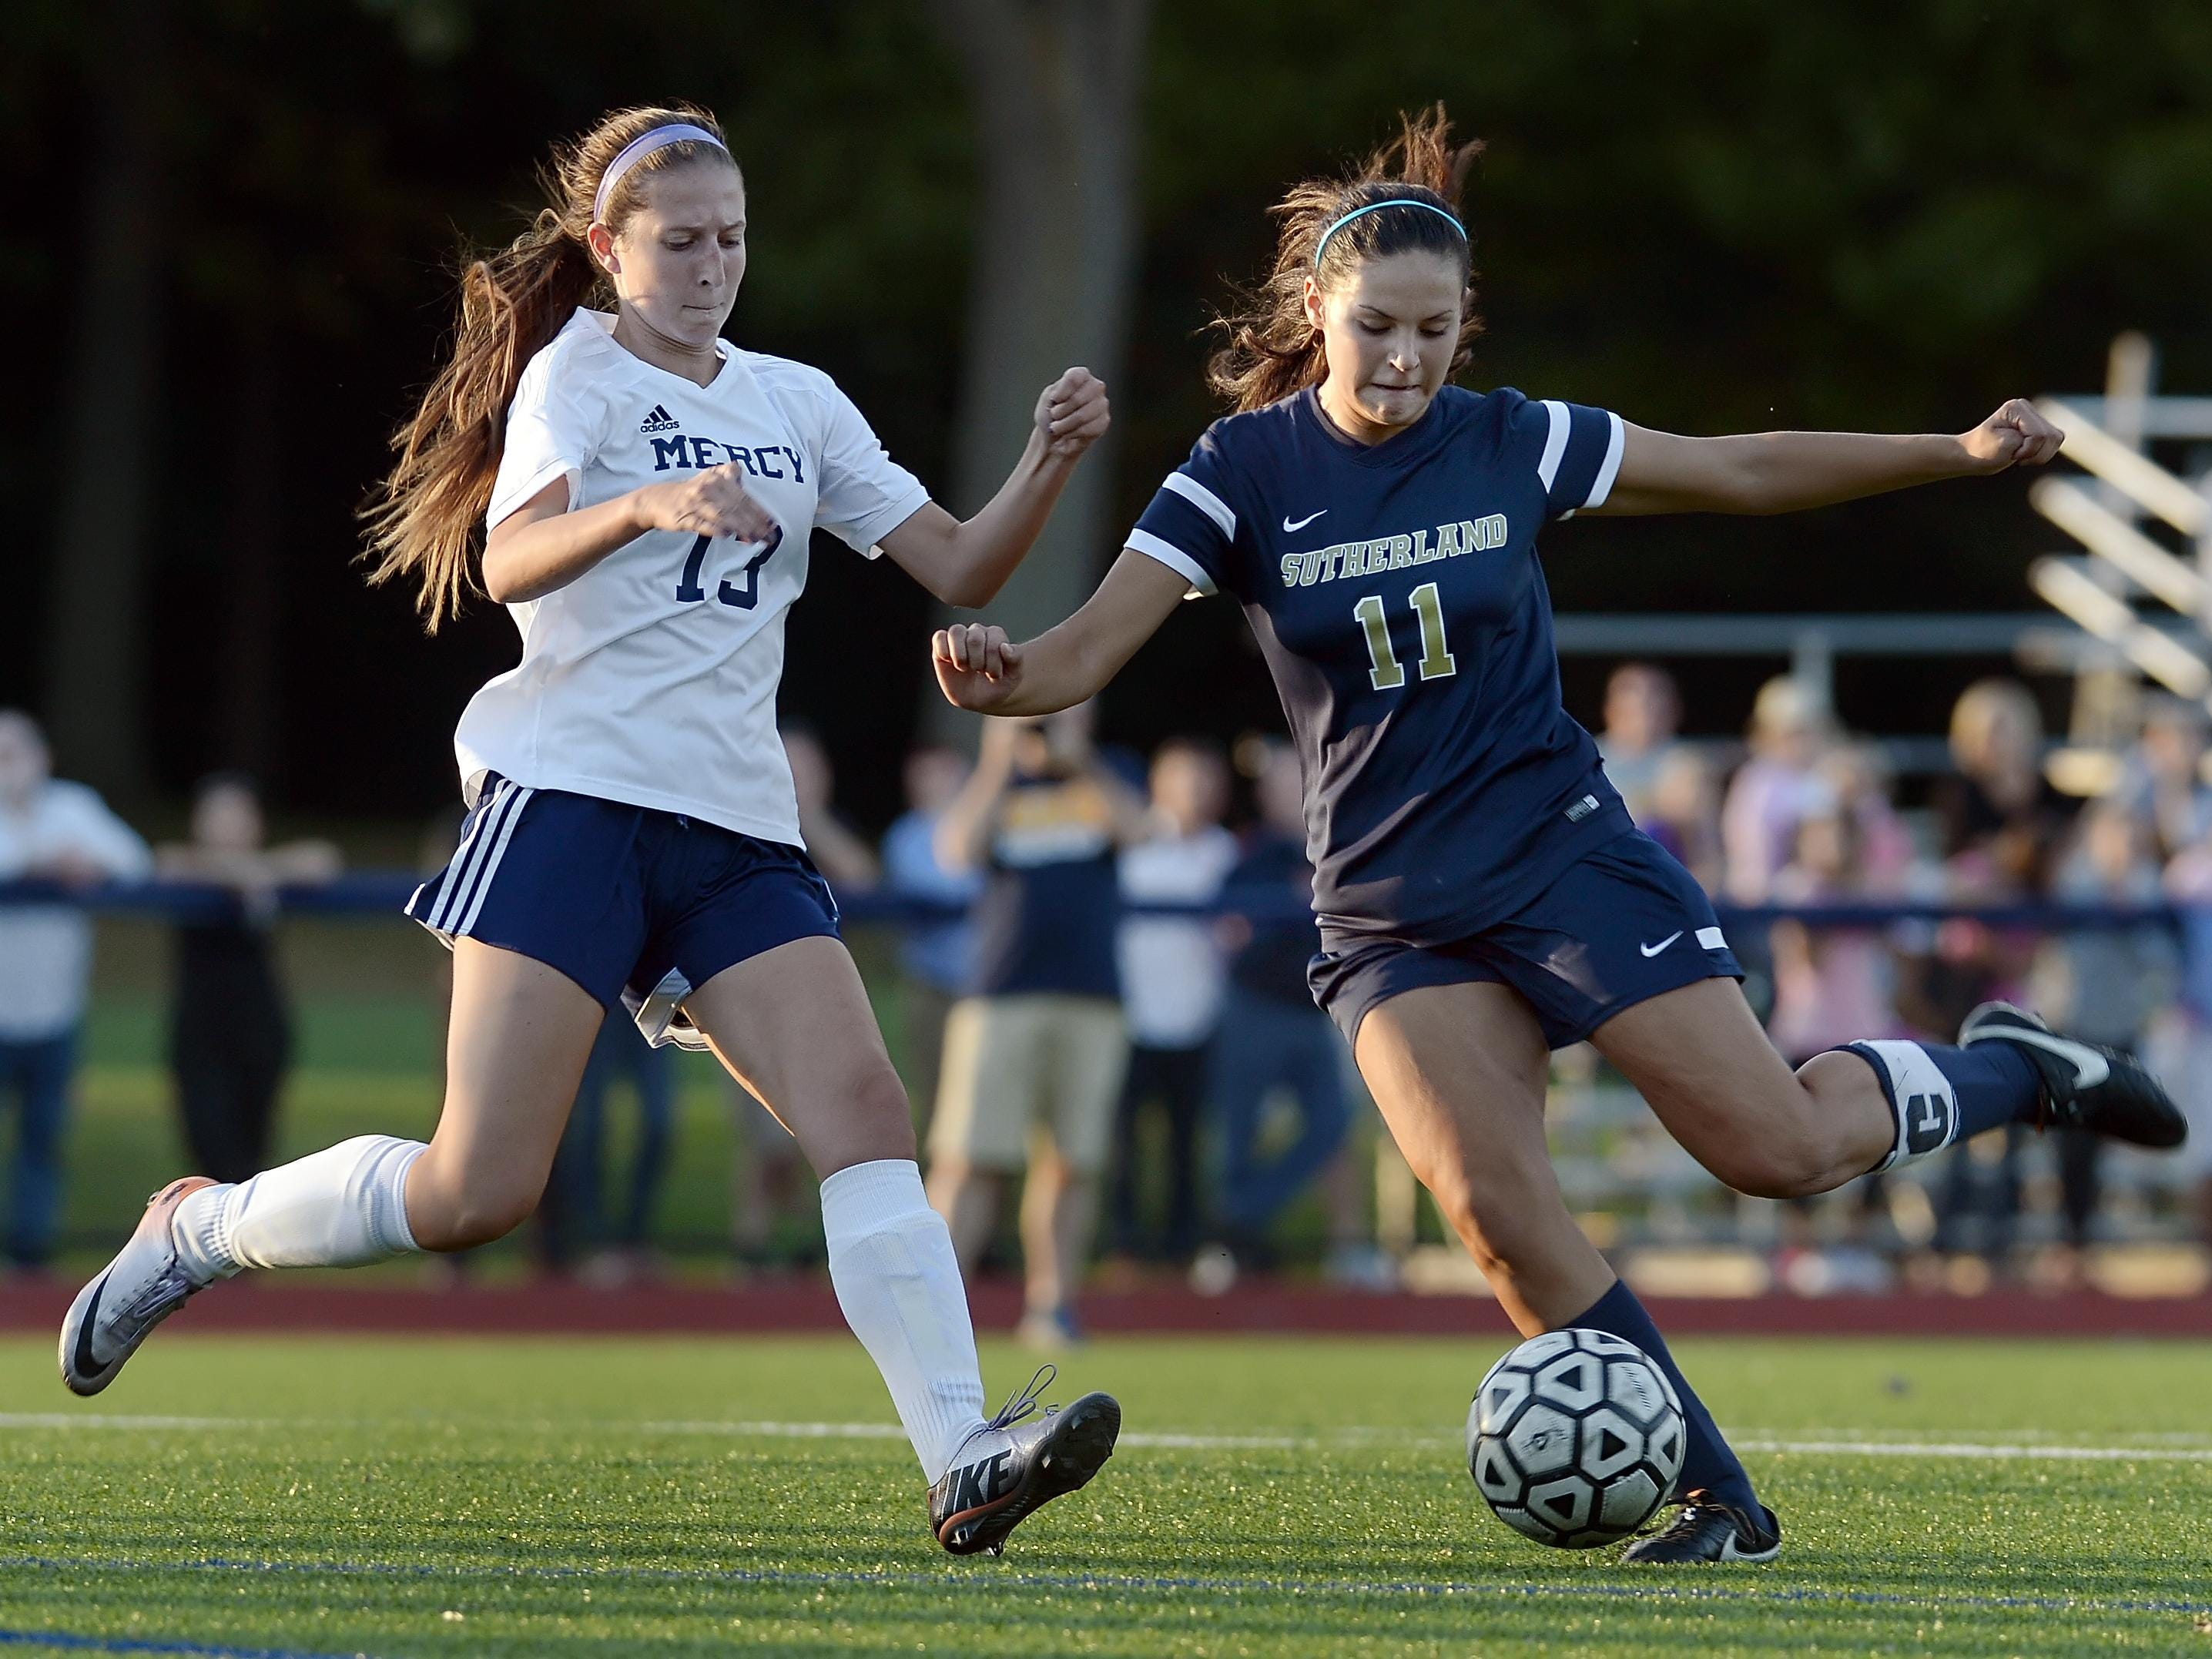 Pittsford Sutherland's Vicki Beatham, right, winds up a shot on goal while defended by Mercy's Kameron Baxter during a regular season game played at Our Lady of Mercy High School on Monday, October 12, 2015. Pittsford Sutherland beat Mercy 2-0.